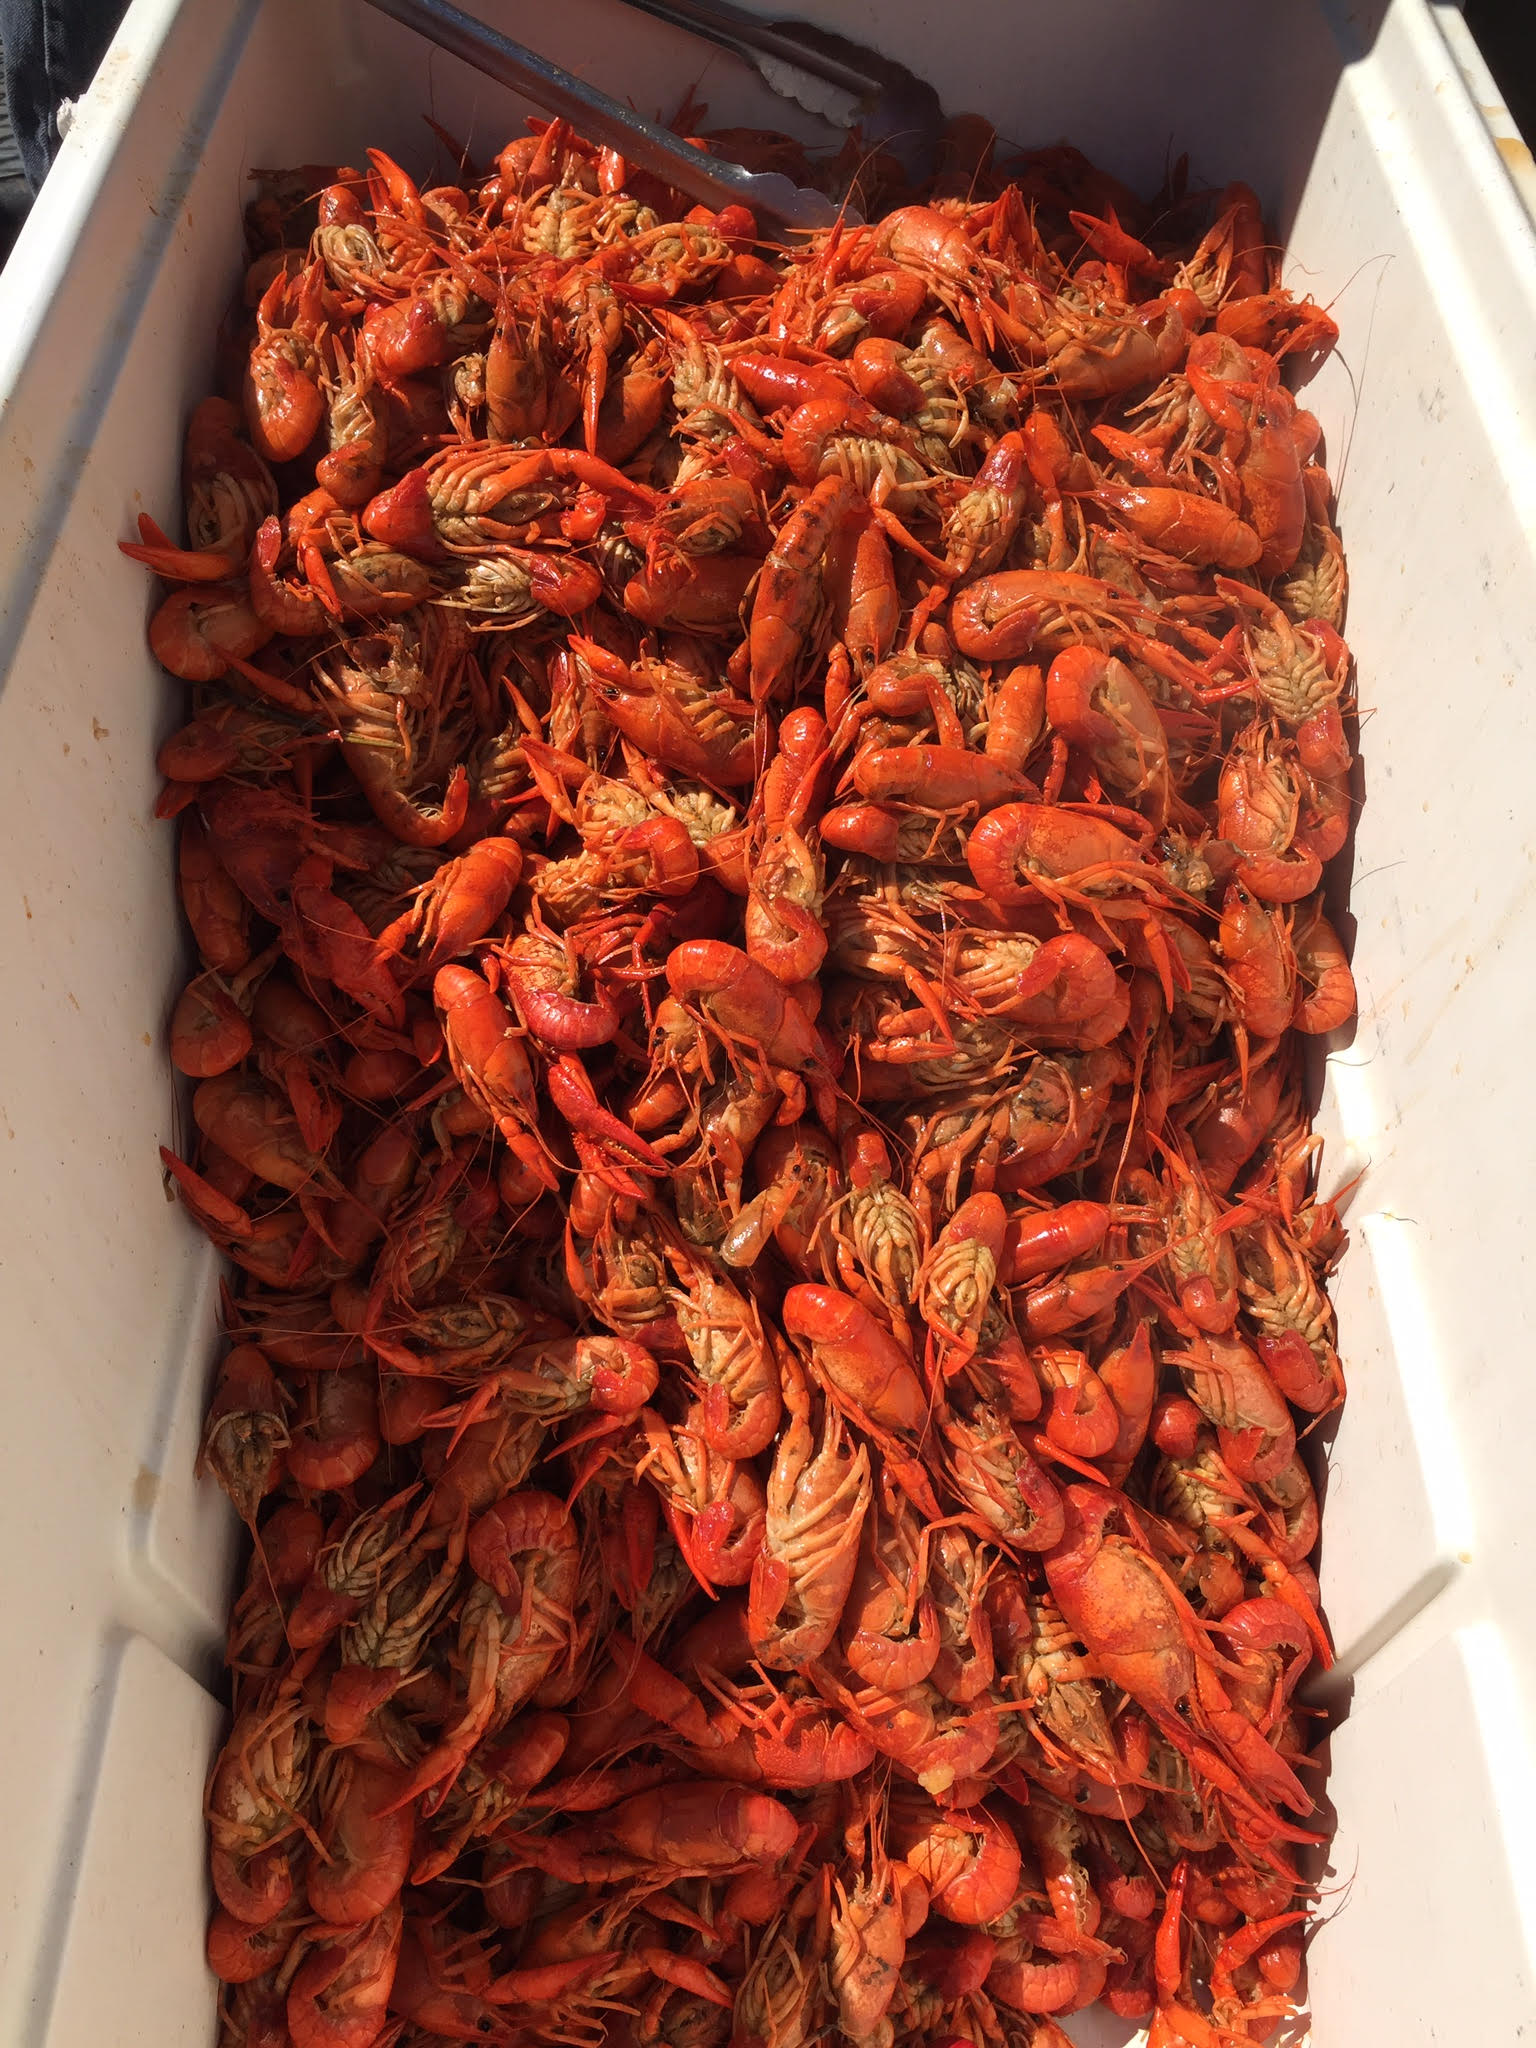 Flavors of Louisiana Crawfish